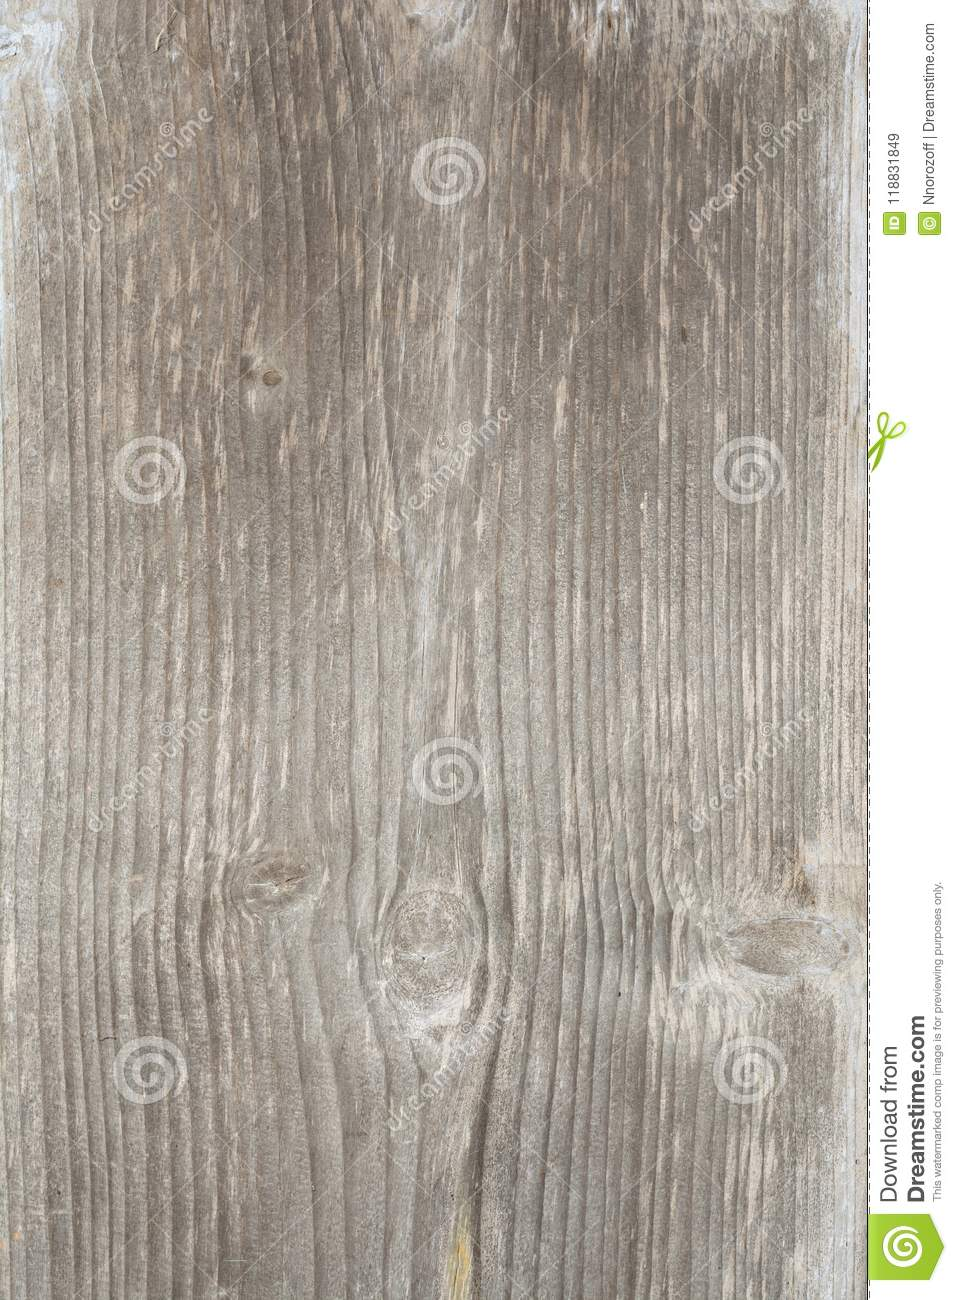 Texture of the old tree with longitudinal cracks, surface of ancient weathered wood, abstract background